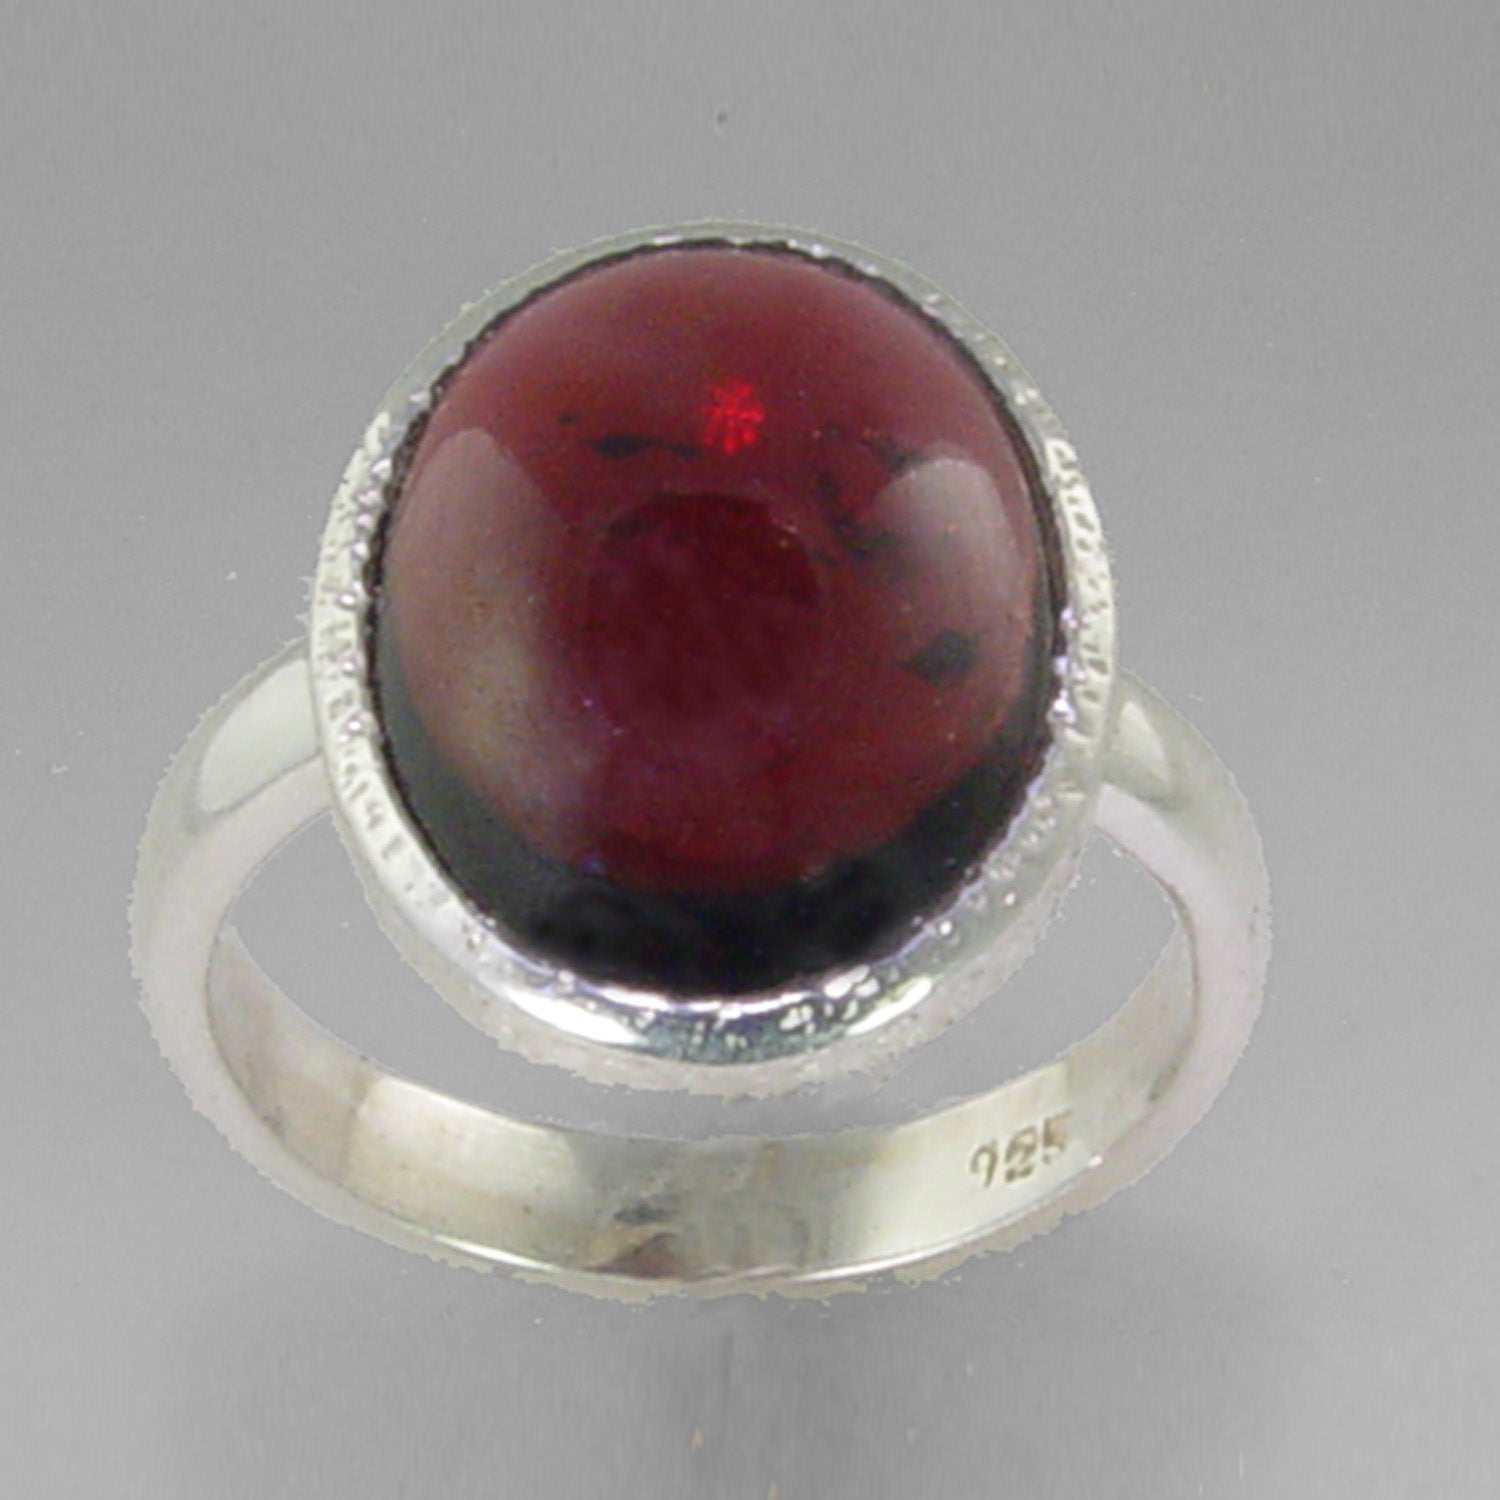 Garnet 7.9 ct Oval Cab Sterling Silver Ring, Size 7